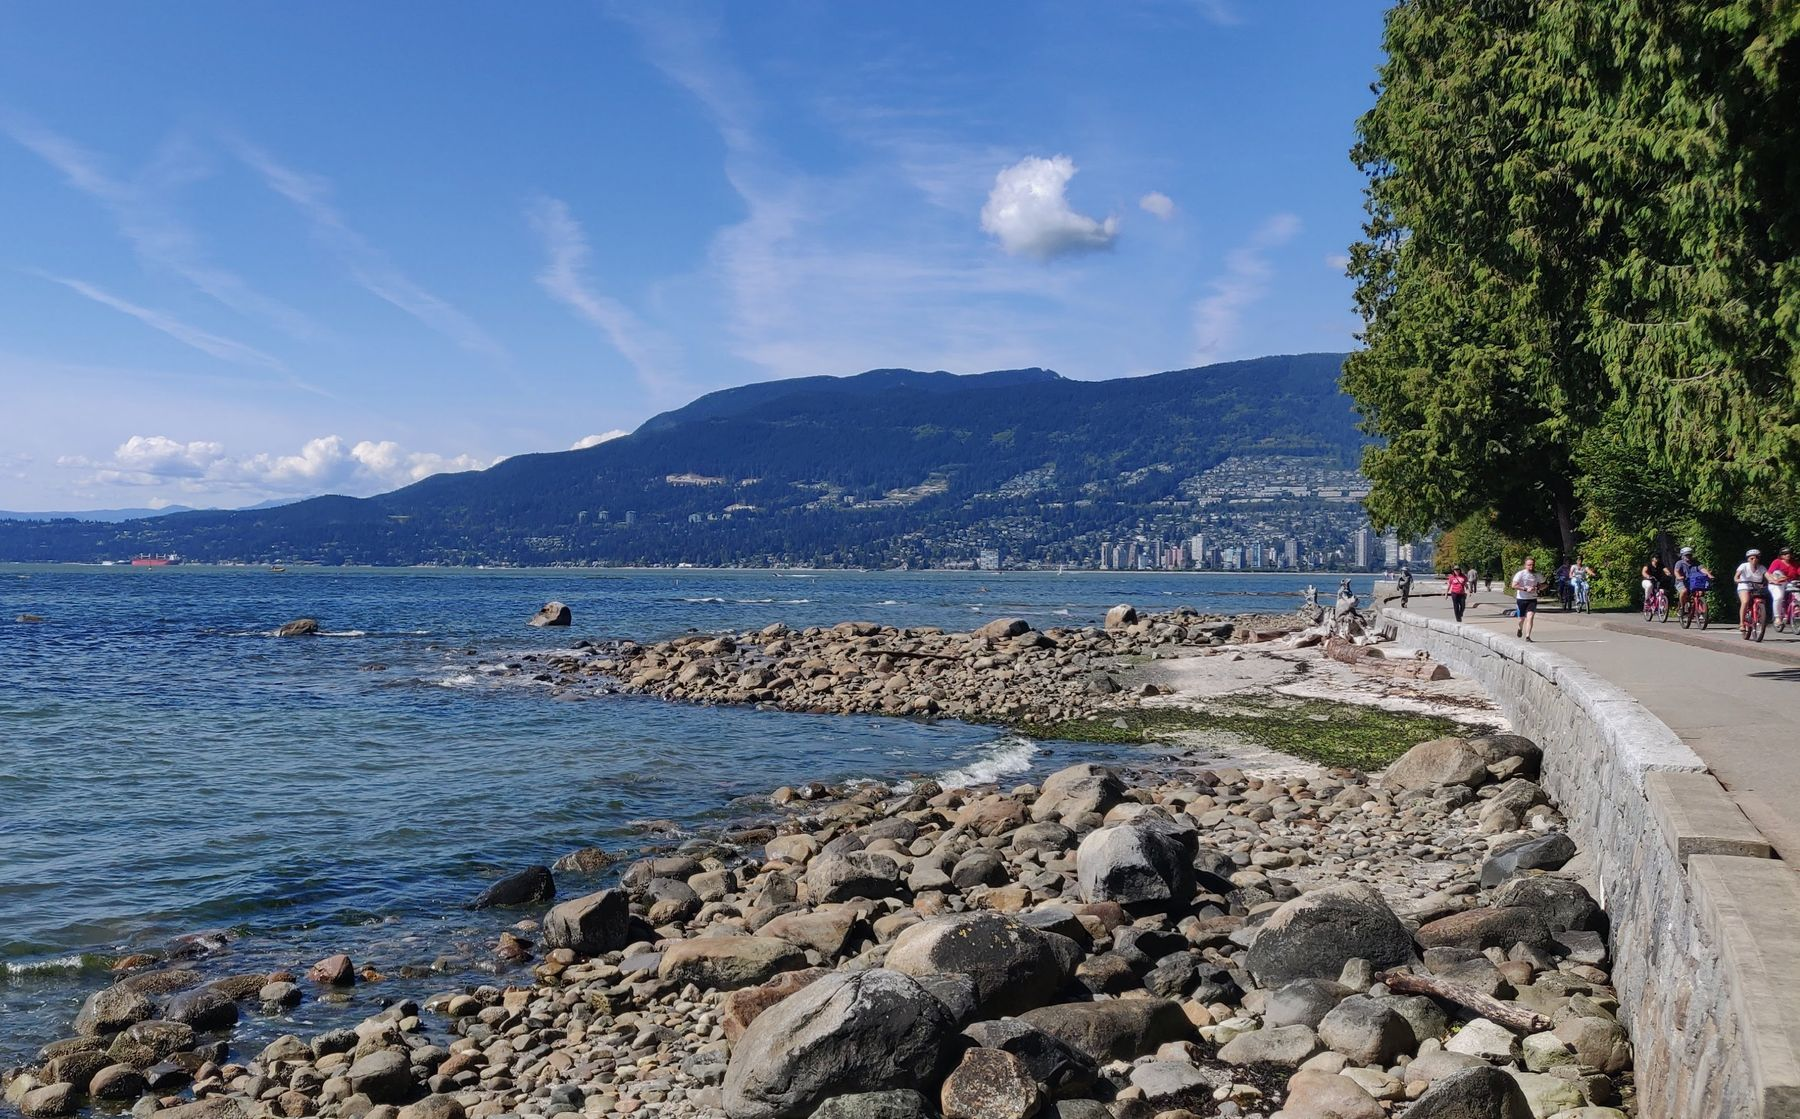 rocks by the shore and people bicycling on the seawall in Vancouver by Stanley Park. Rocky Mountains in the background.